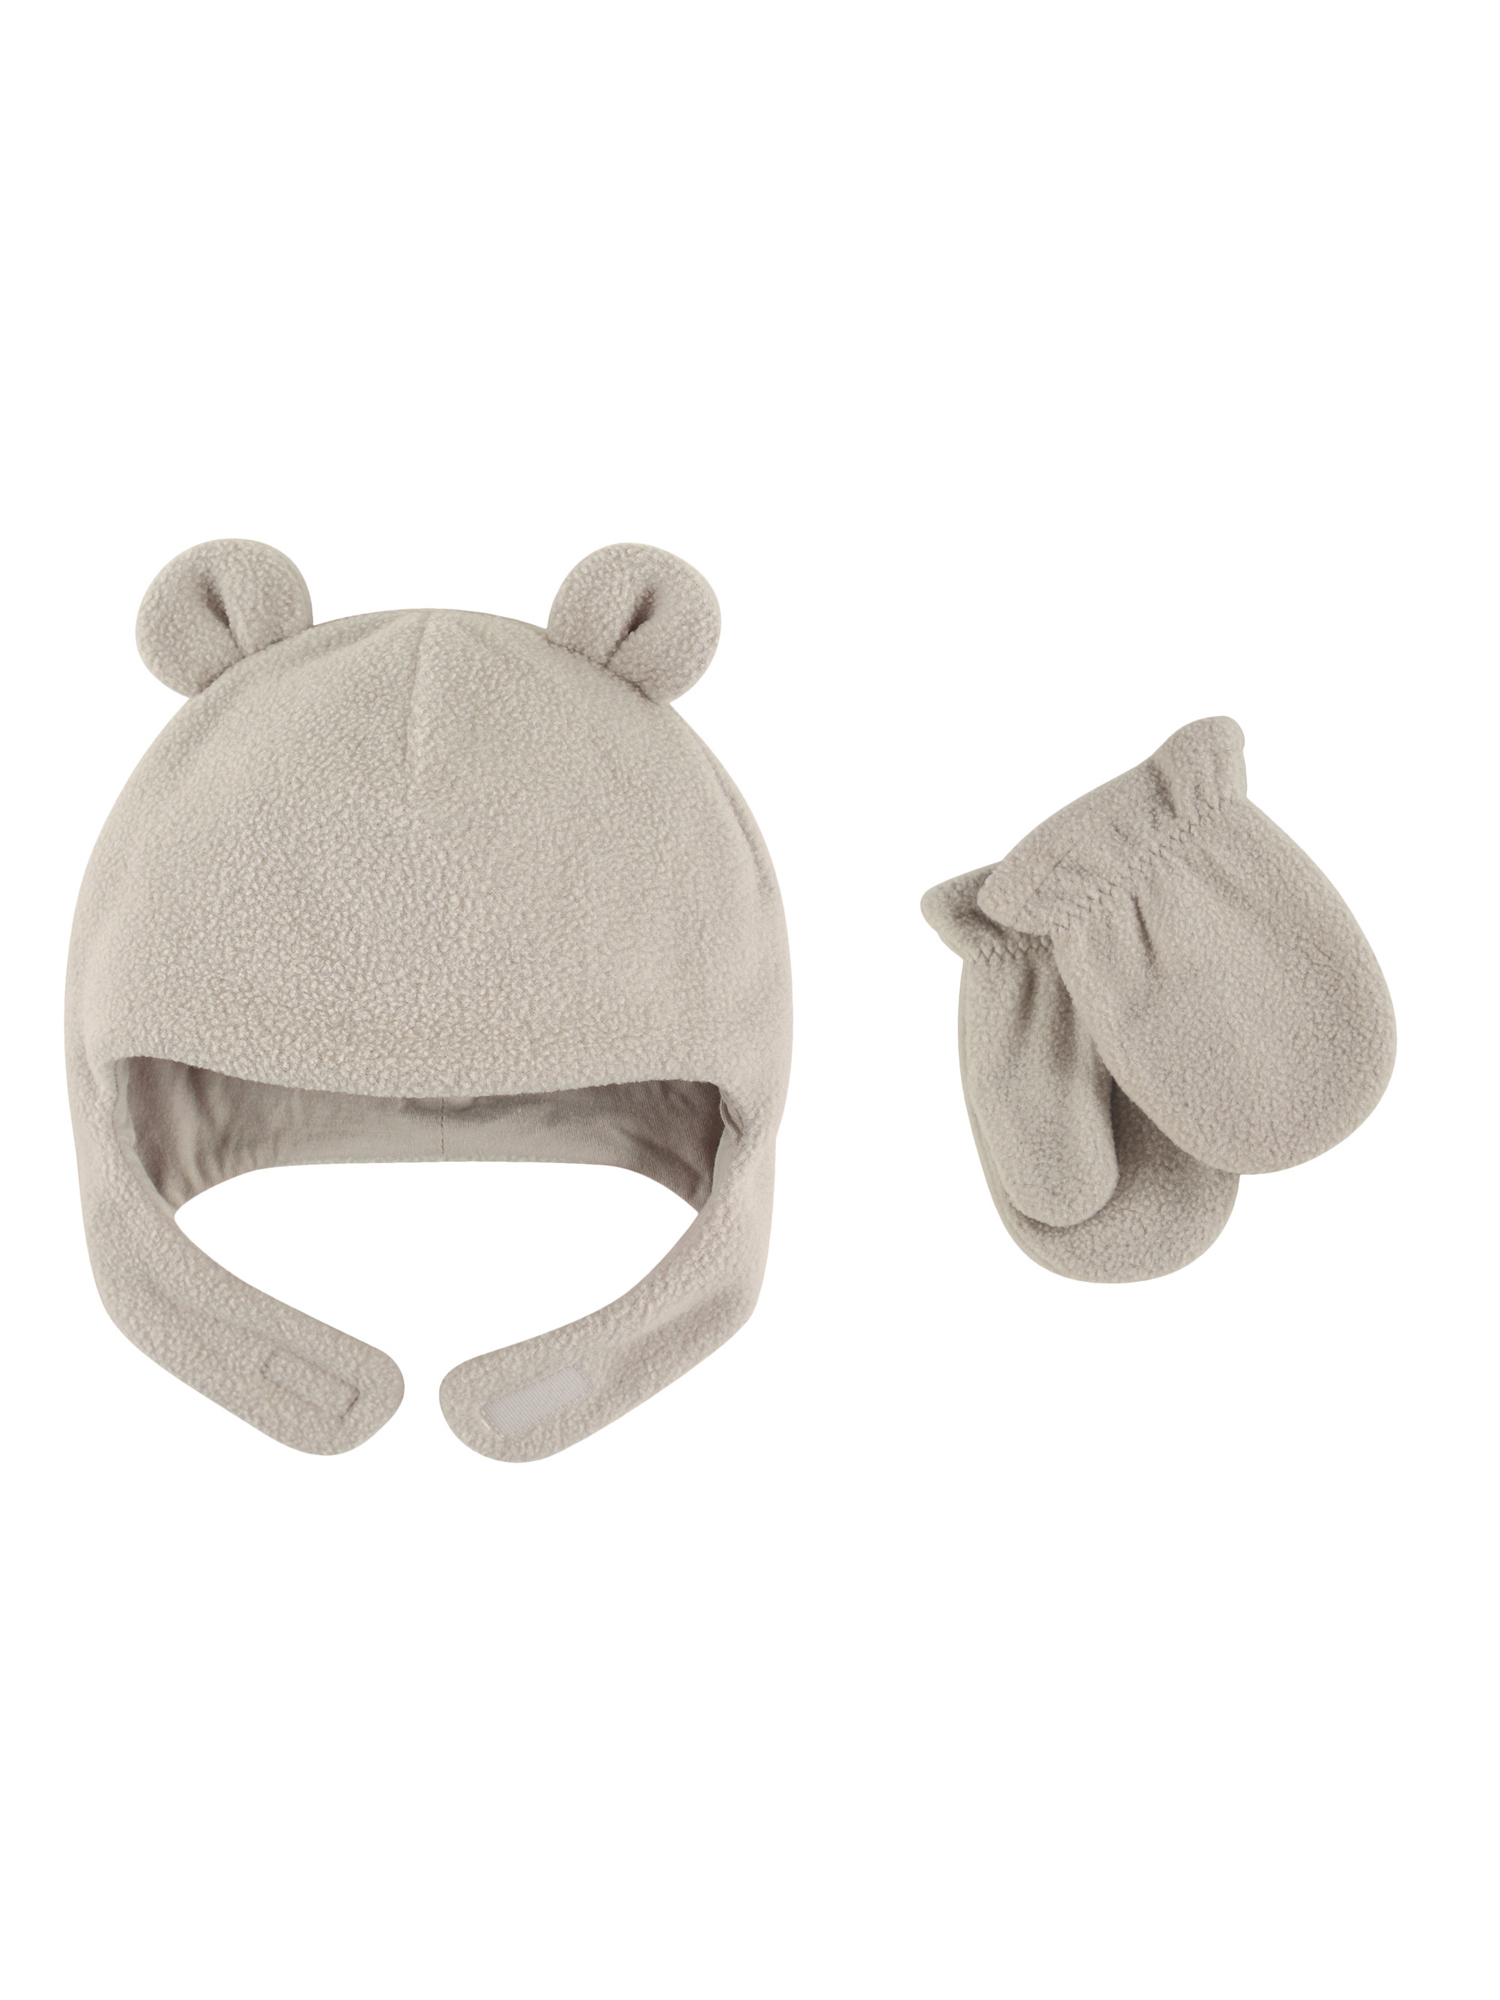 Toddler Unisex Fleece Hat & Mittens 2pc Set